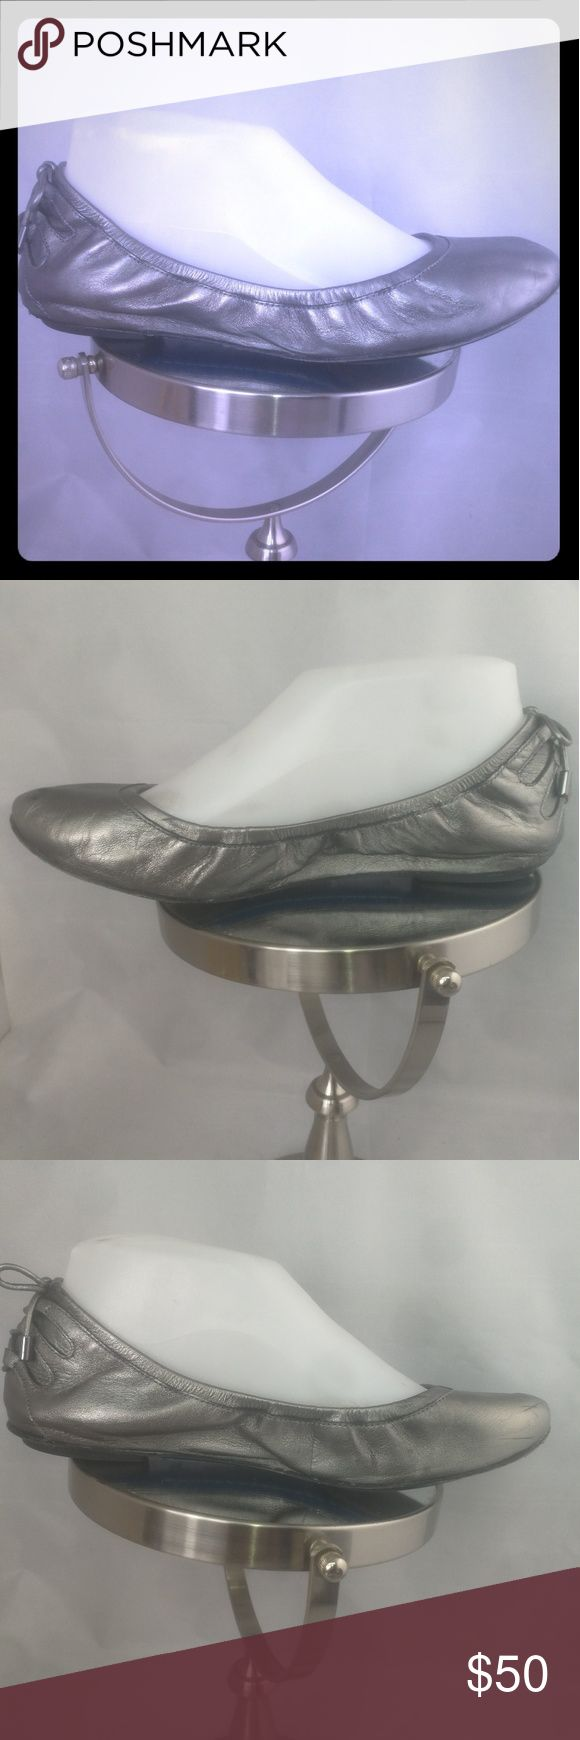 Maria Sharapova by Cole Haan Size 8.5 Ballet Flats Pre-owned Excellent Condition Normal Wear. Flats has some minor scuff marks still wearable.  PLEASE refer to all pics of this item to see all details and defects. I'm available to answer all your questions about this item. Cole Haan Shoes Flats & Loafers